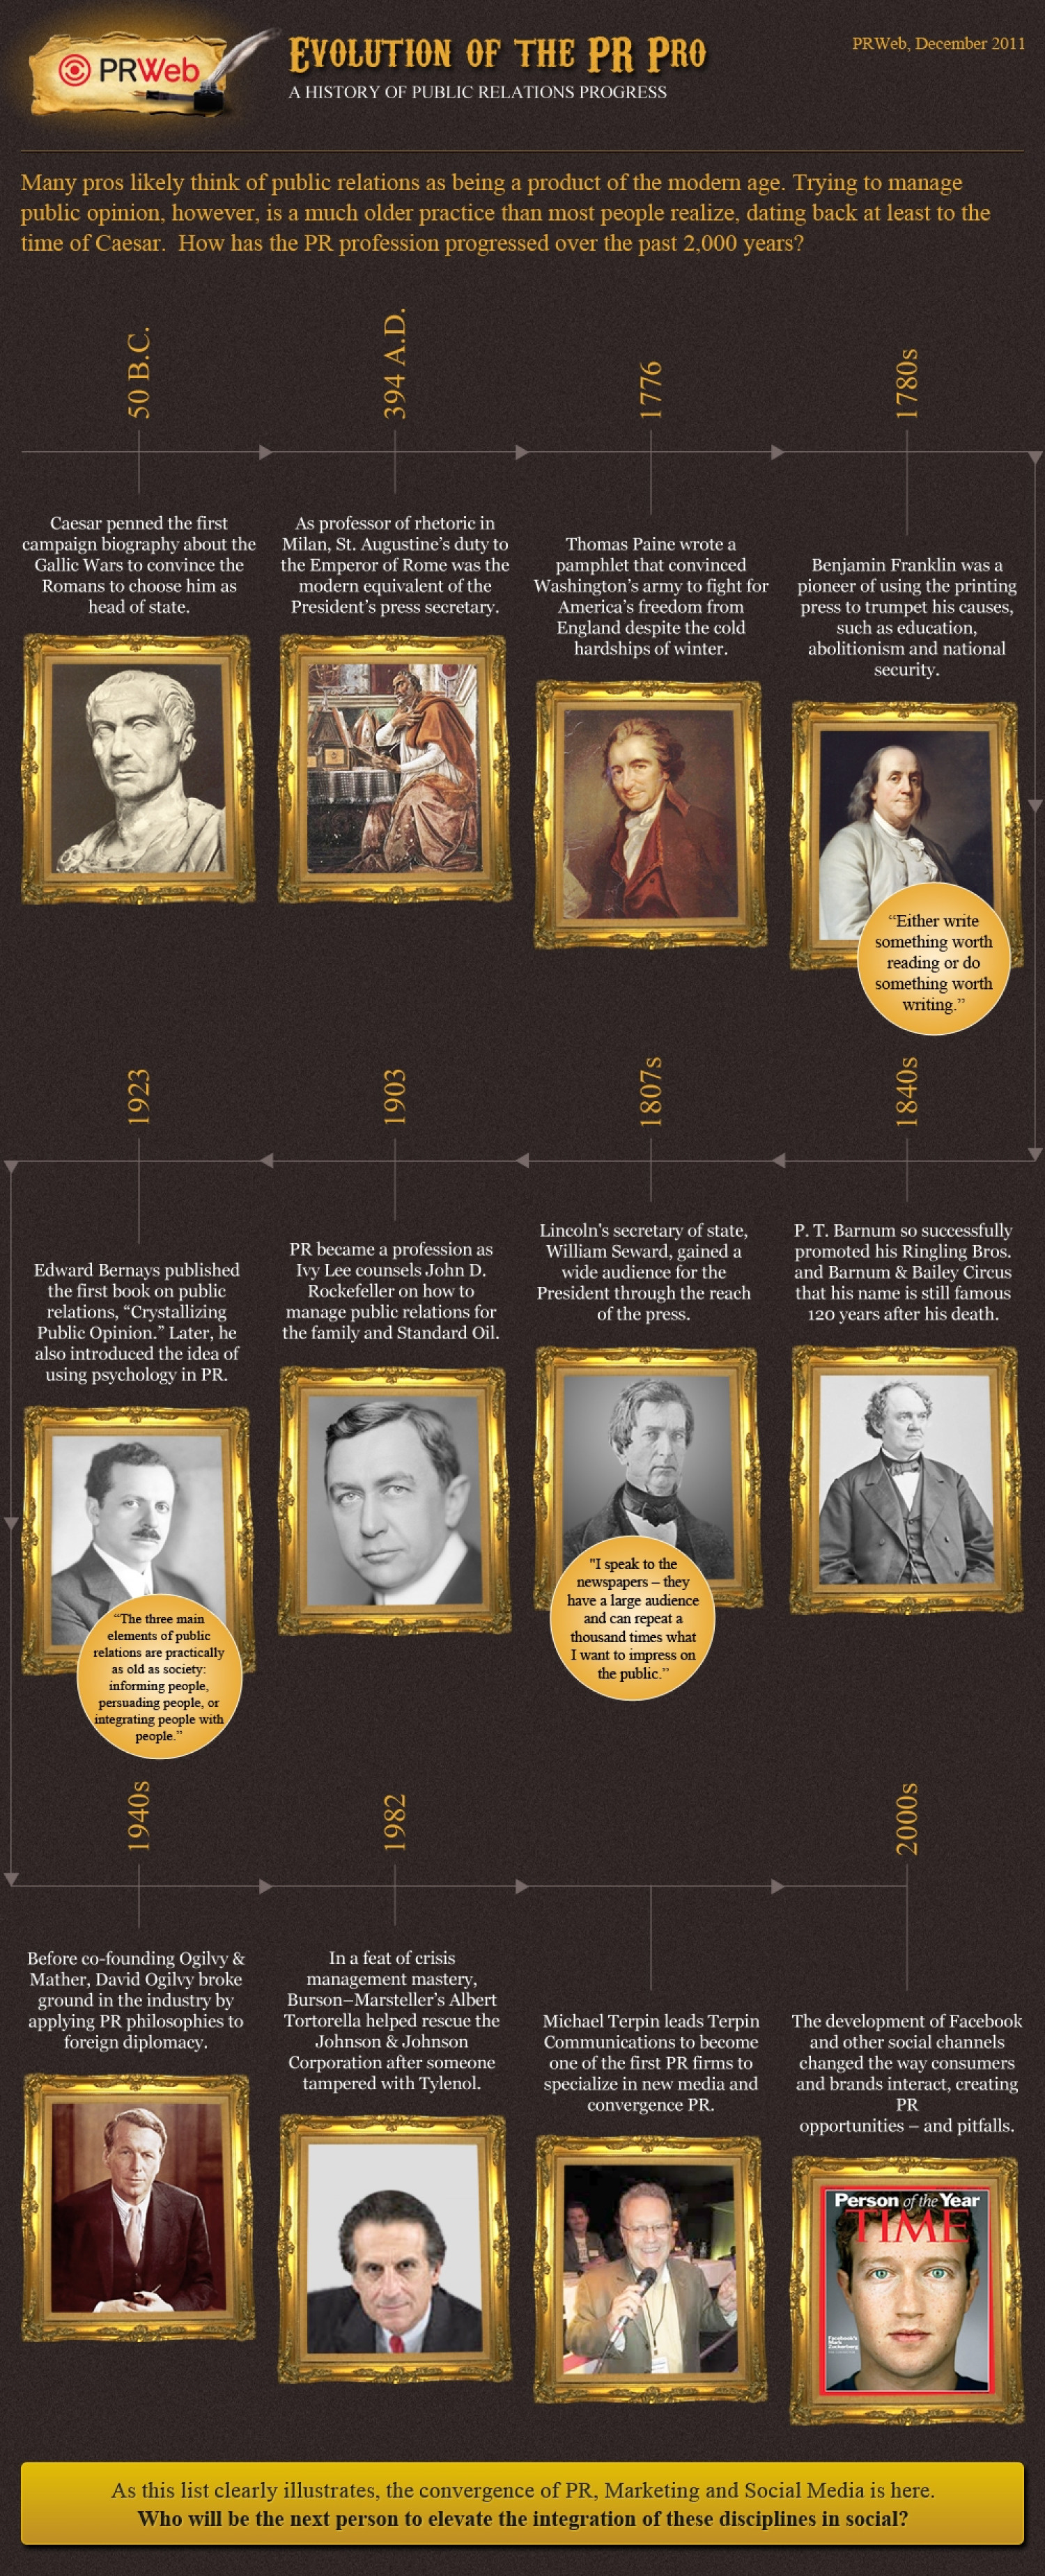 The Evolution of the PR Pro Infographic